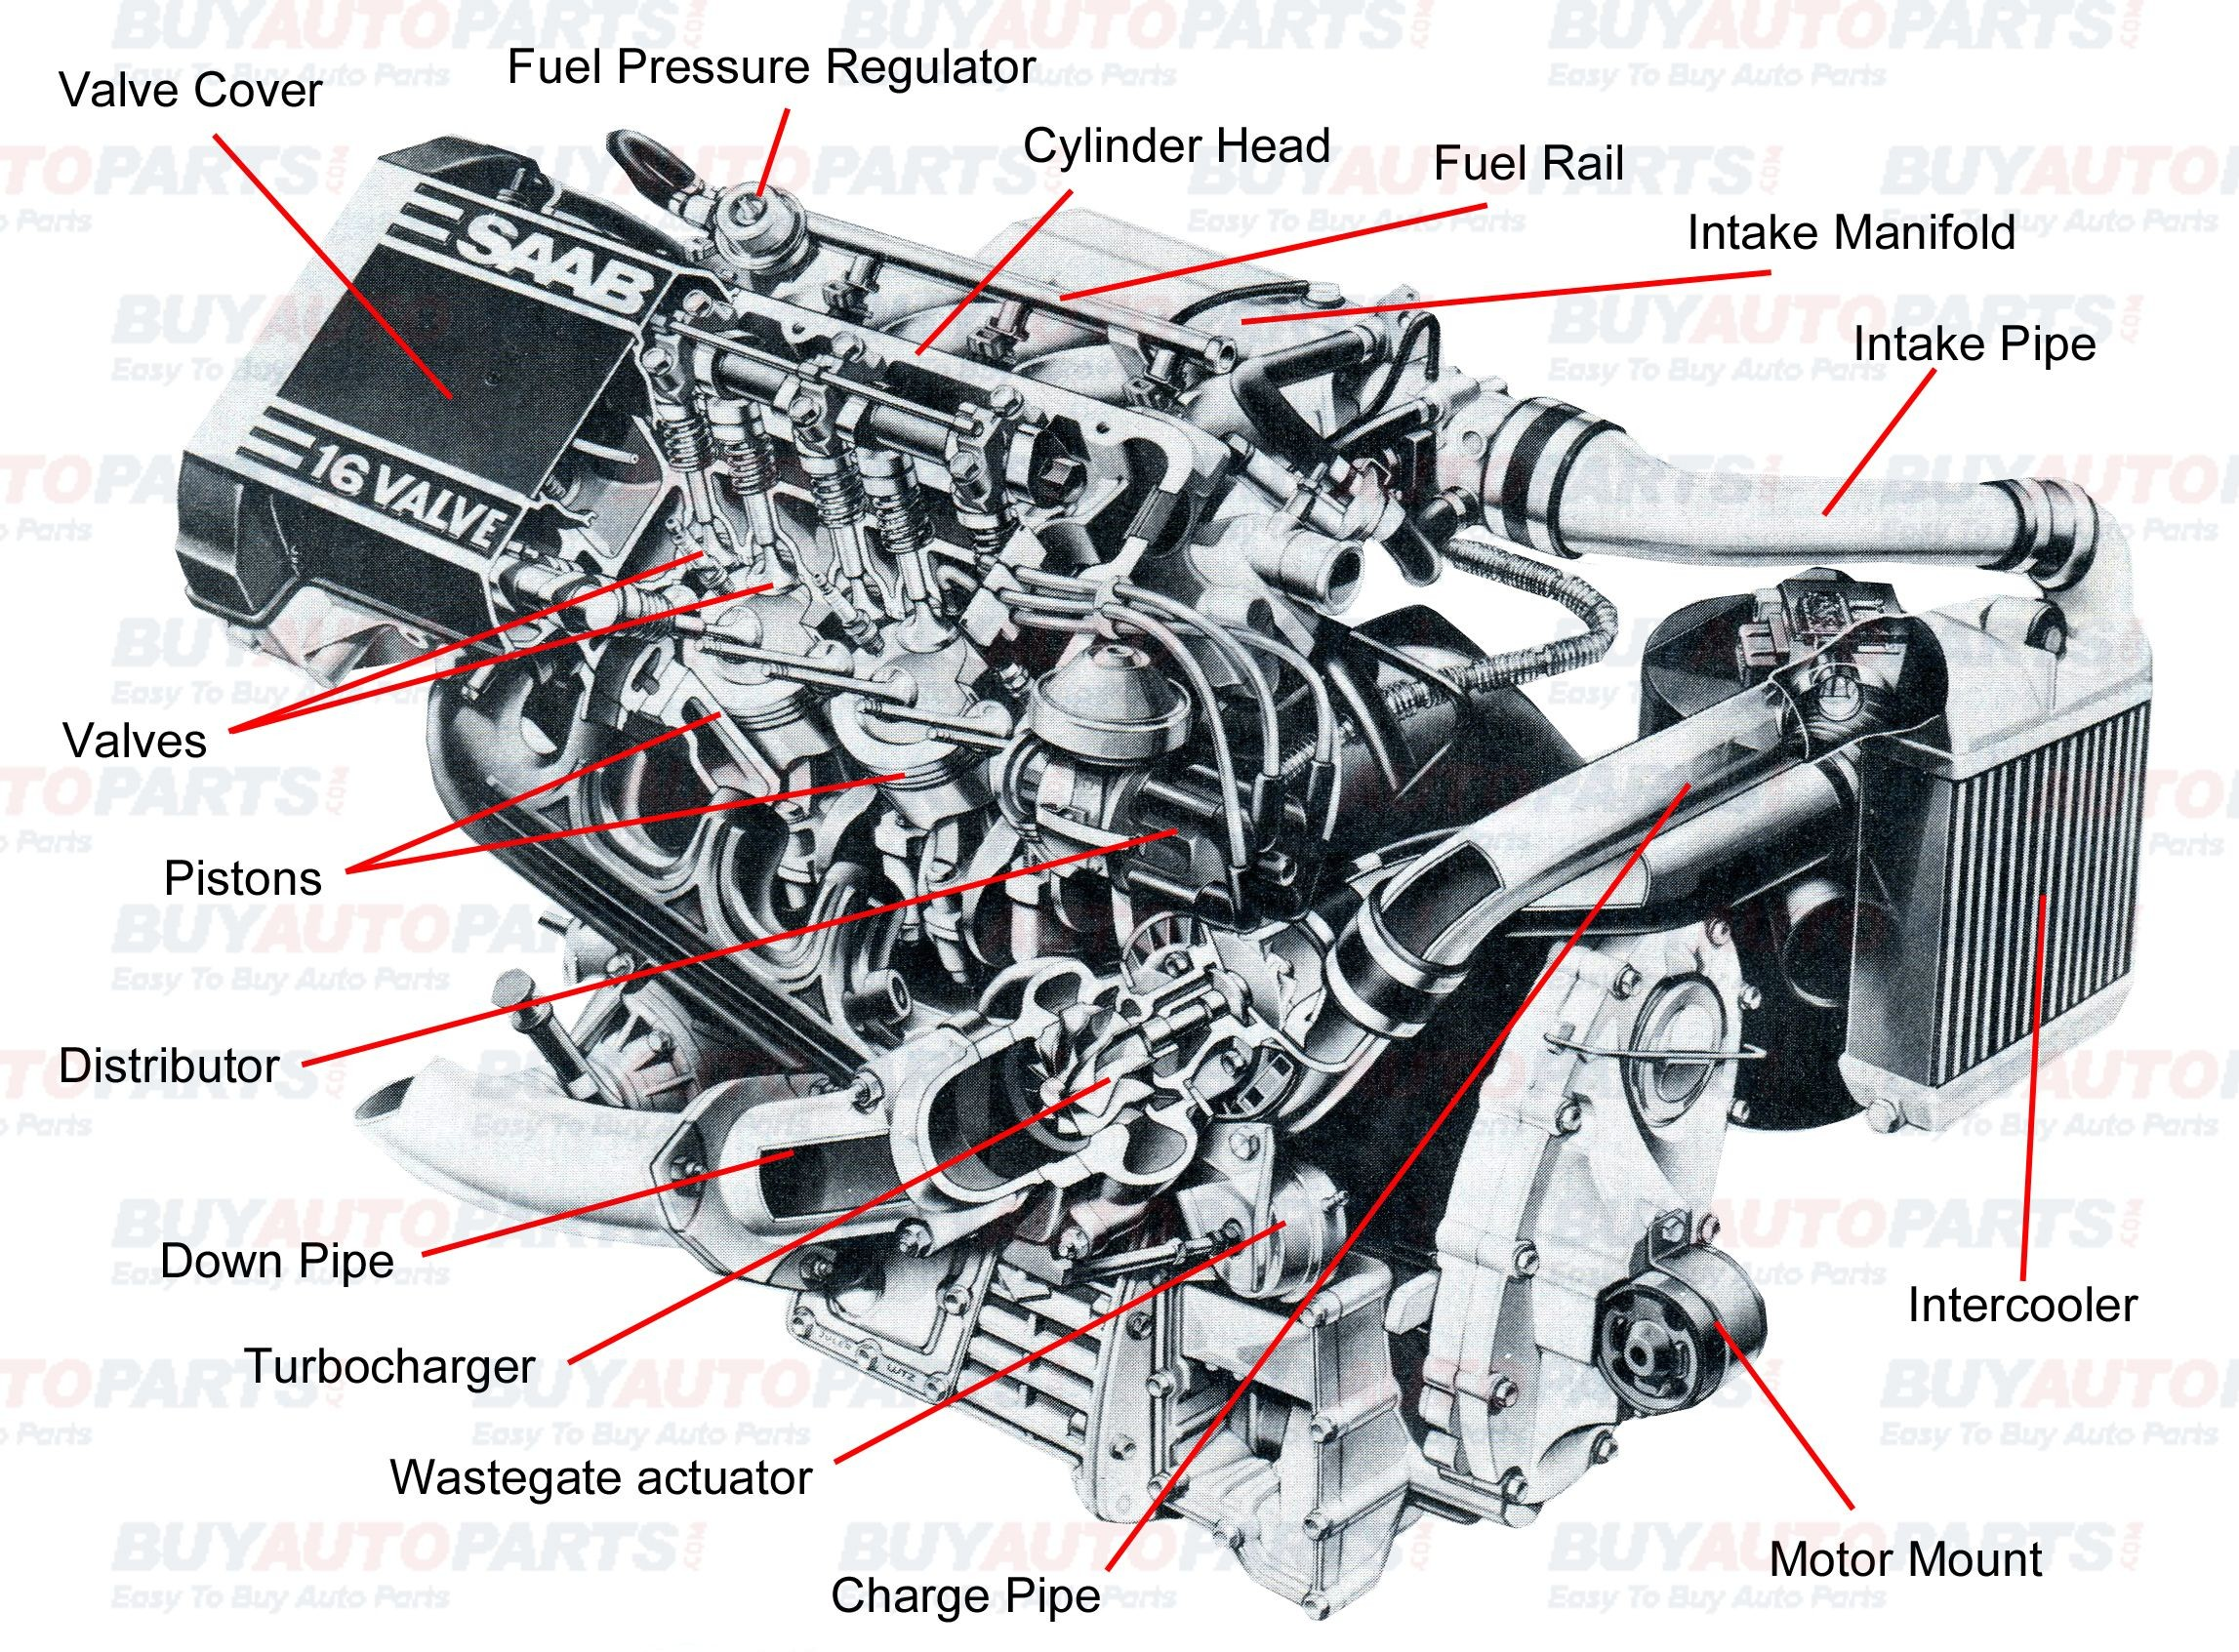 Car Engine Diagram Poster Pin by Jimmiejanet Testellamwfz On What Does An Engine with Turbo Of Car Engine Diagram Poster